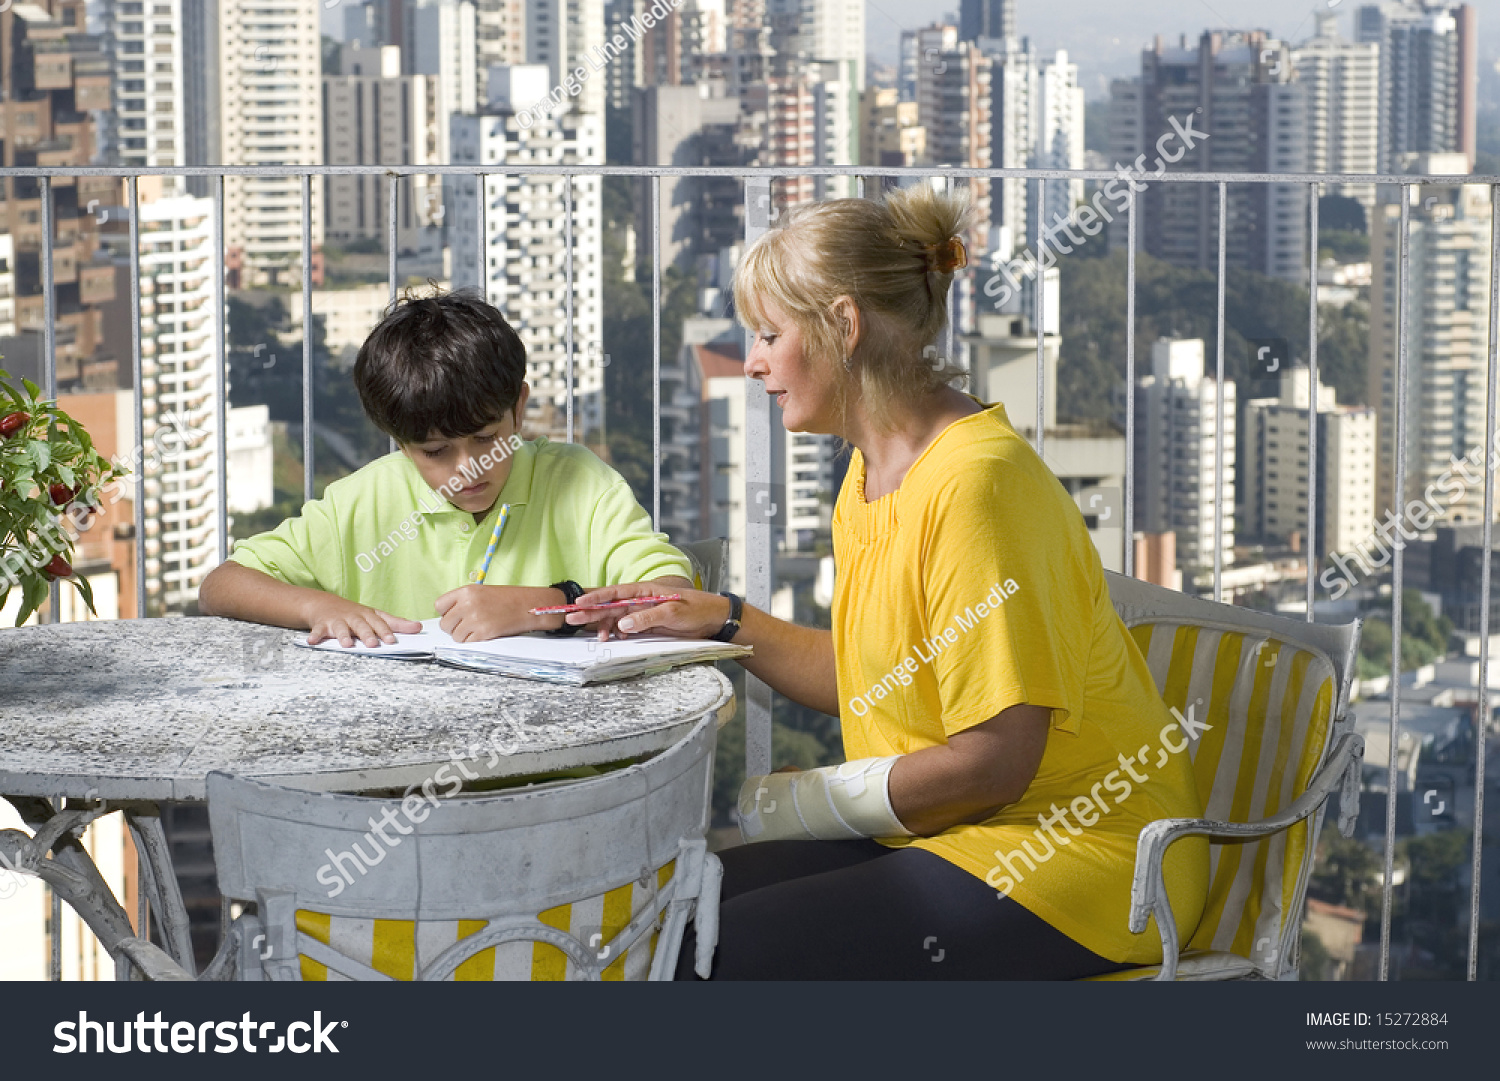 Woman watching or helping boy write woman and boy sitting for Balcony overlooking city